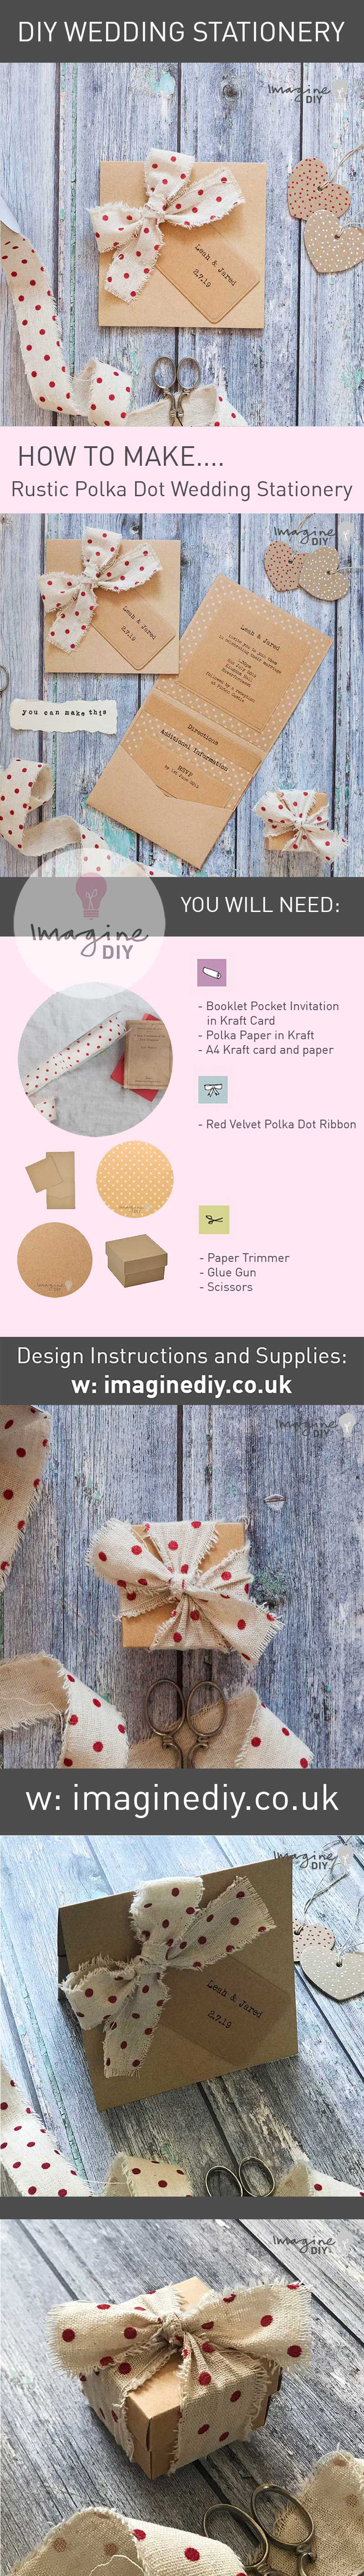 How to make your own rustic wedding stationery. DIY wedding stationery supplies. Polka dot wedding stationery with kraft card. Pocket fold invitations.